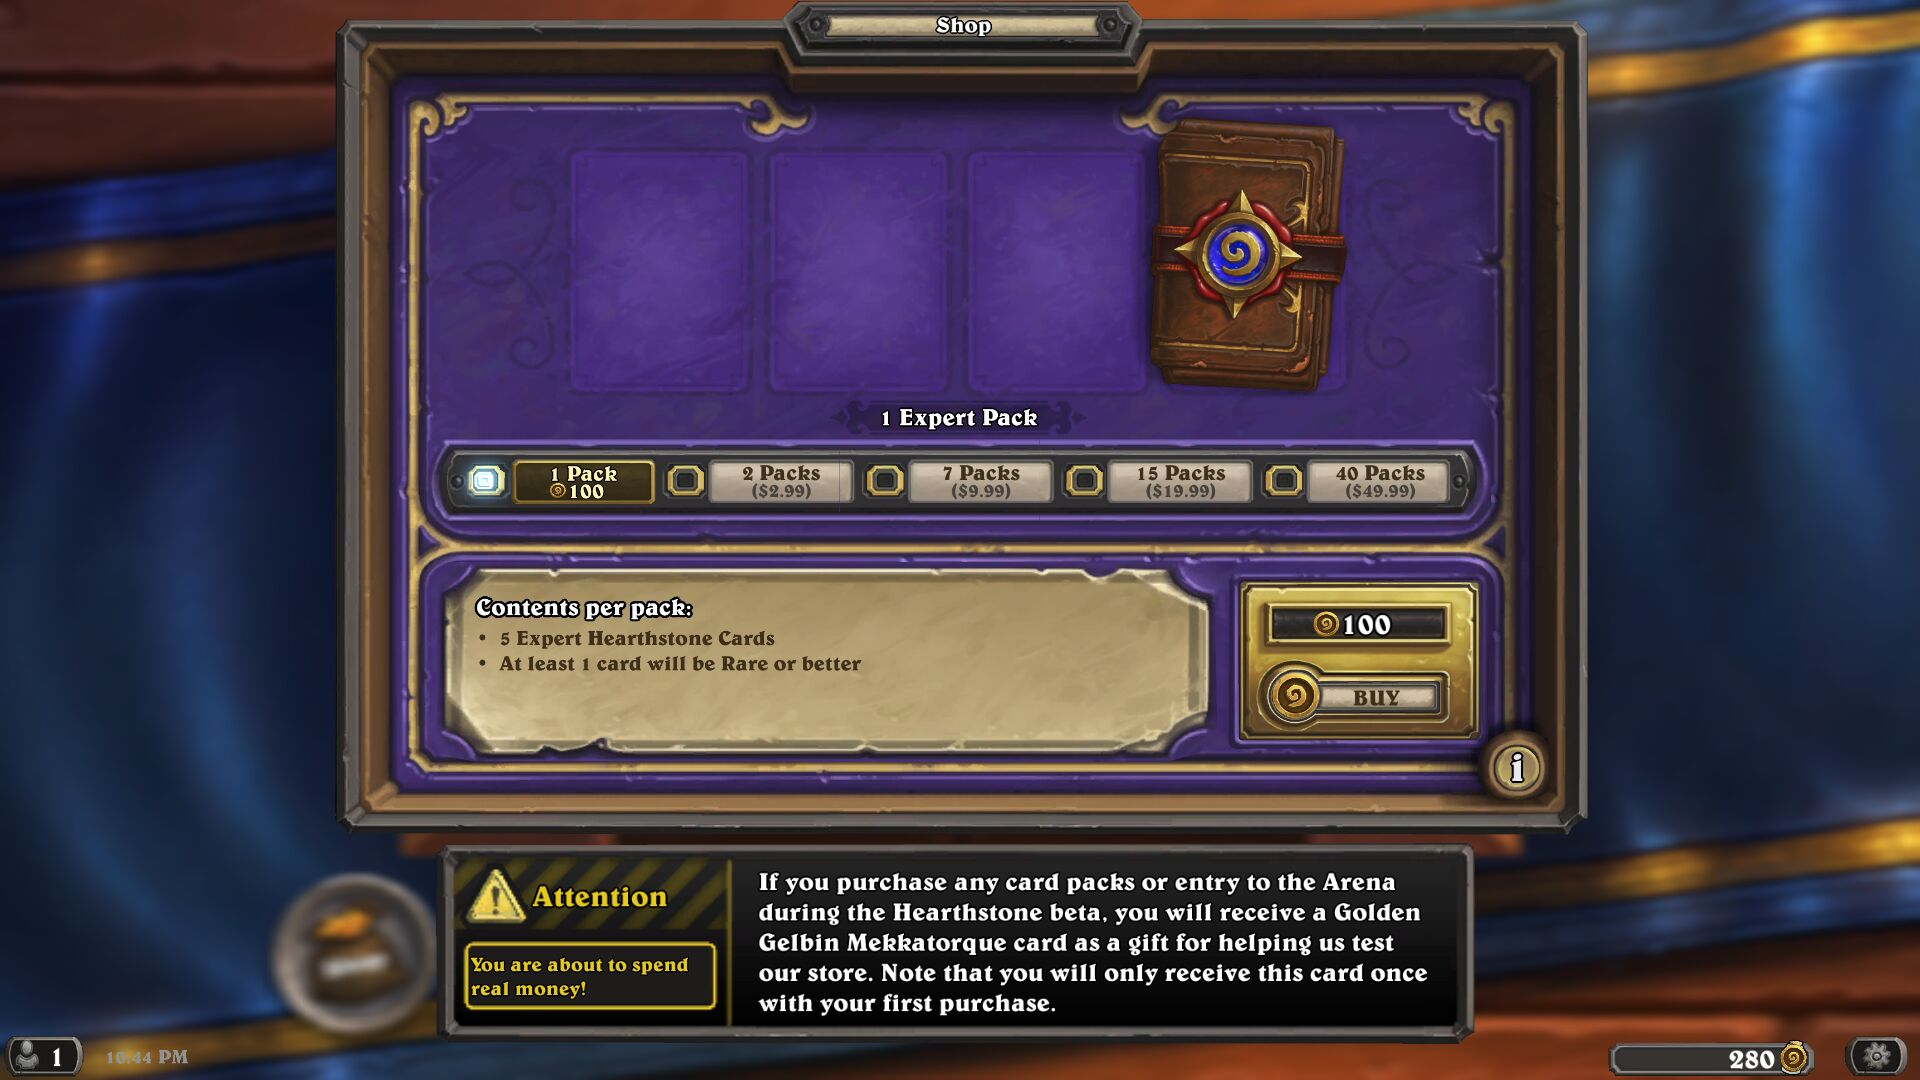 how to see how many wins you have in hearthstone